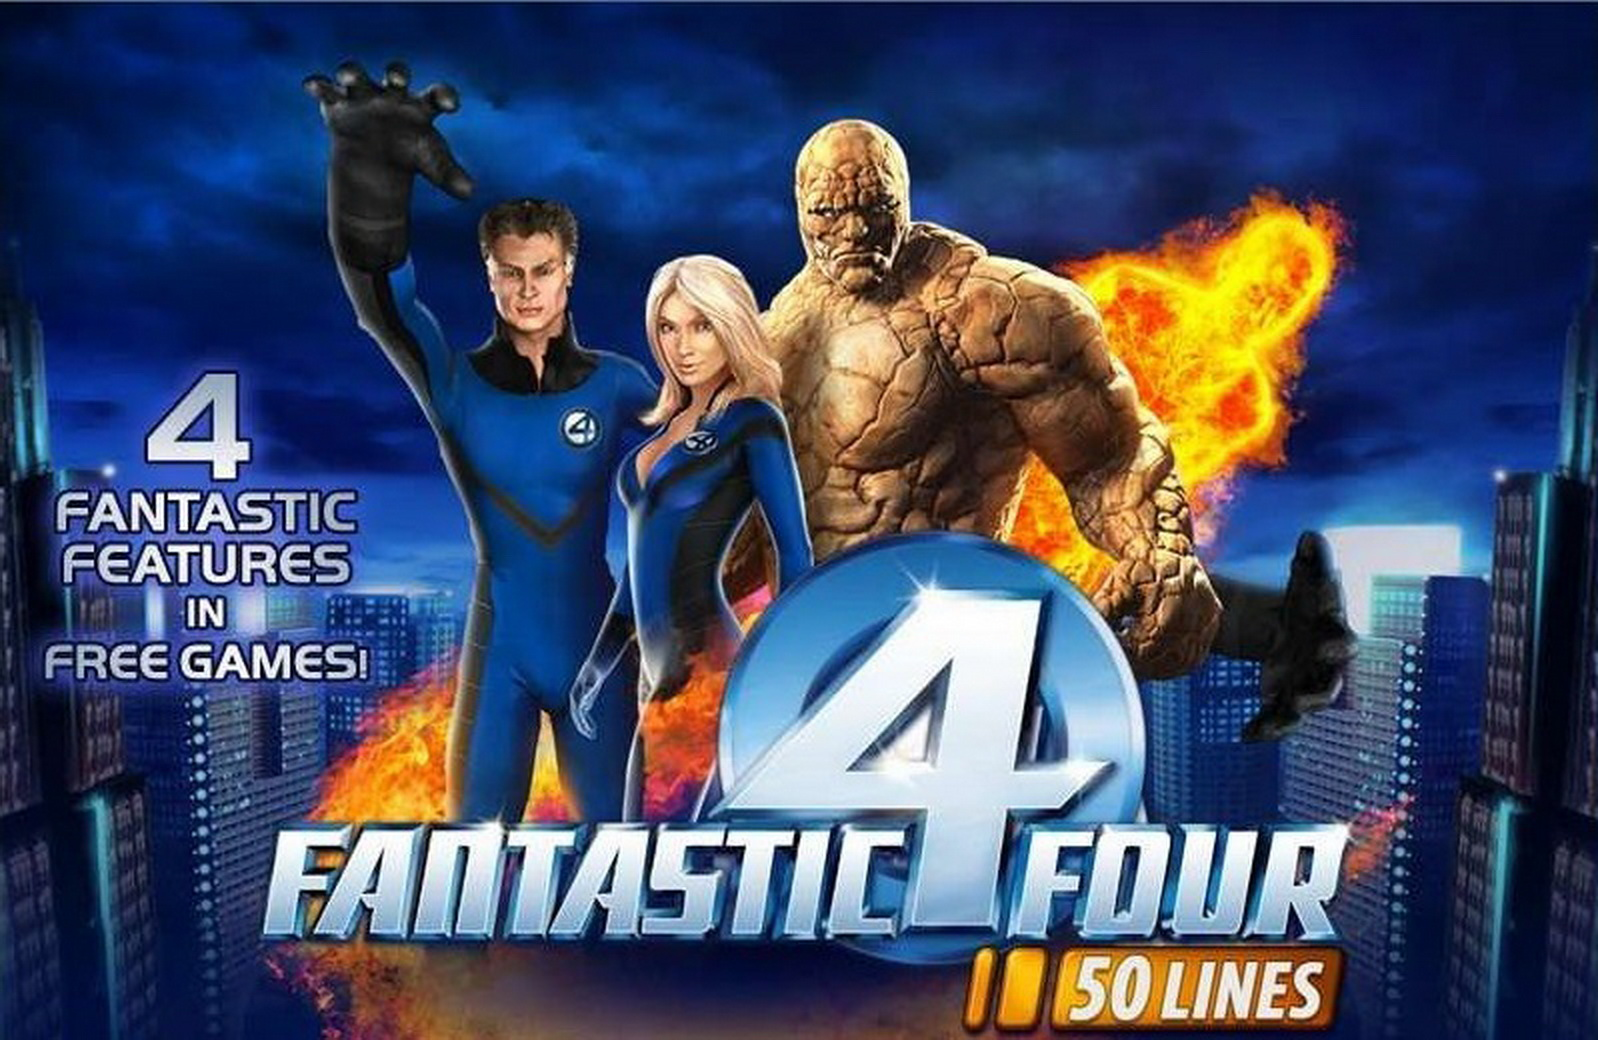 The Fantastic Four 50 lines Online Slot Demo Game by Playtech